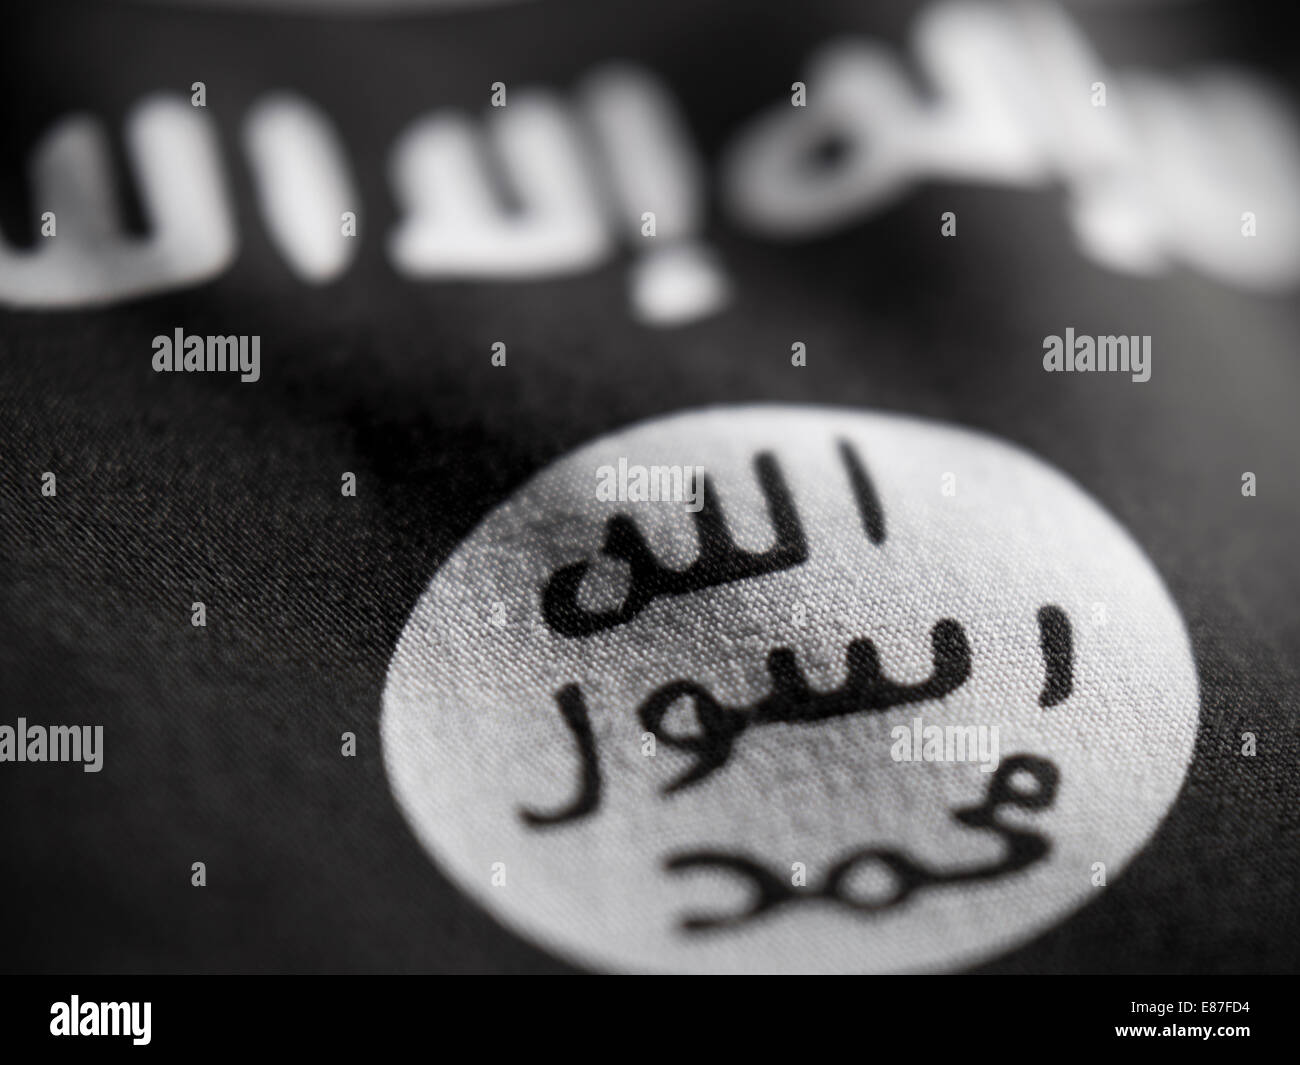 Abstract macro view of ISIS flag with shallow depth of field. Stock Photo